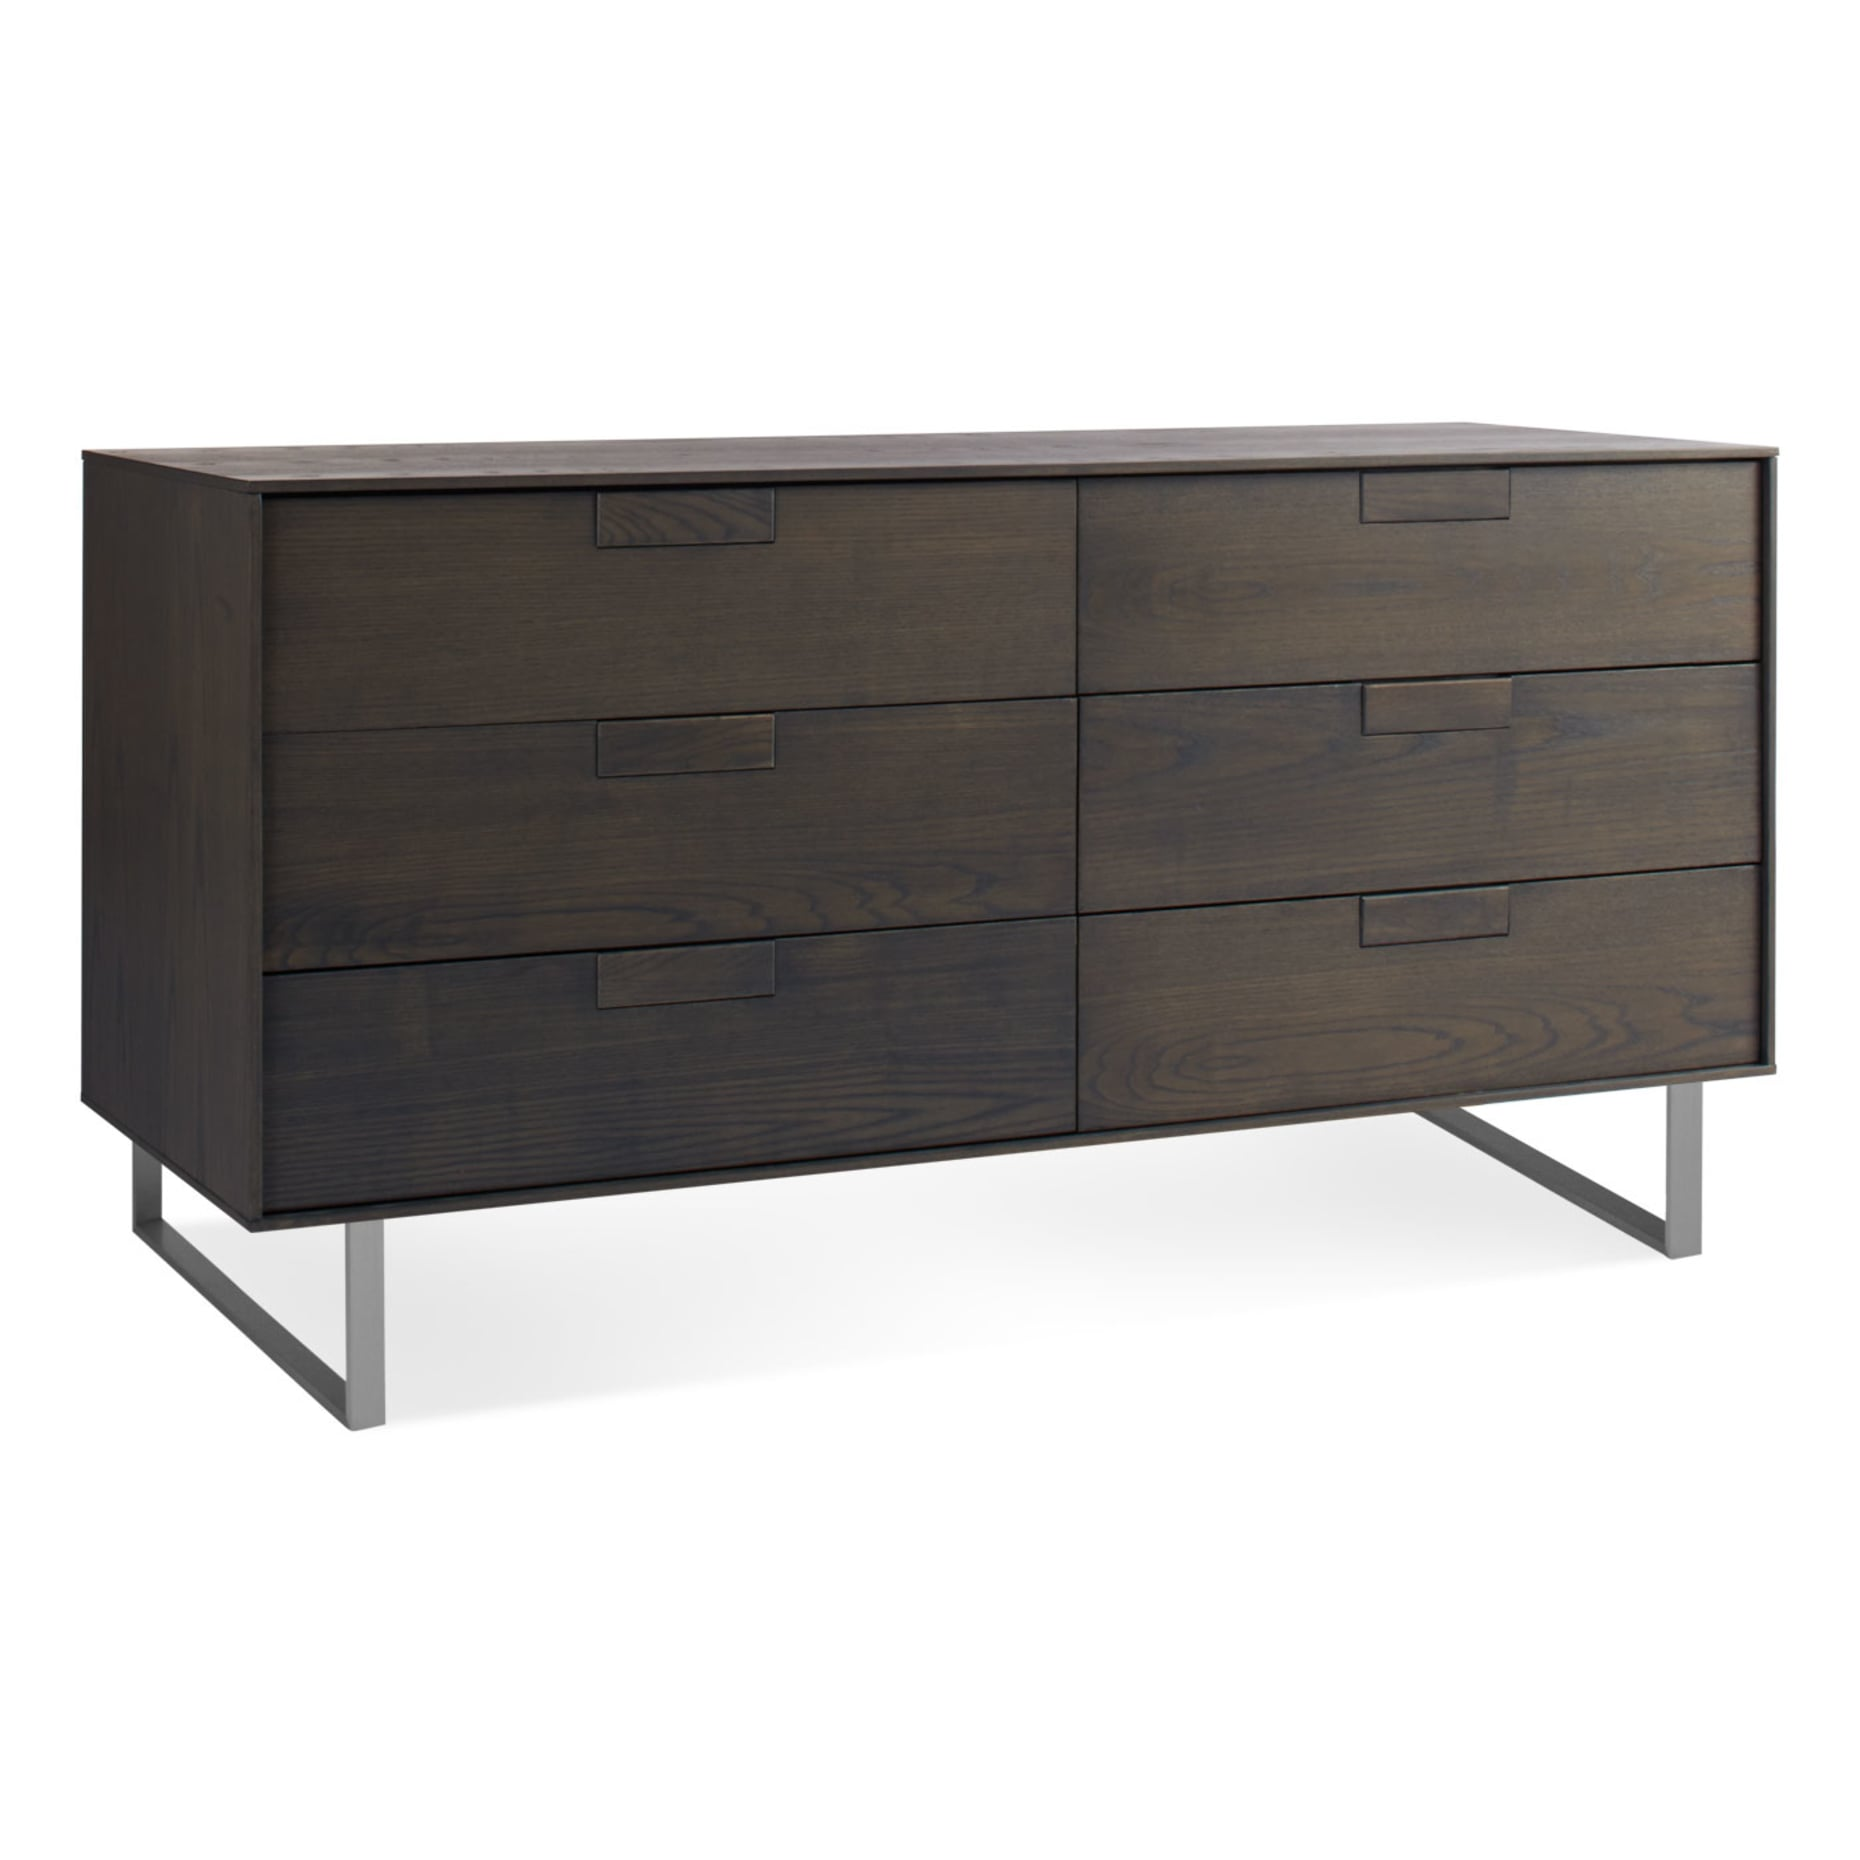 se1 6drw sk 34 series 11 6 drawer dresser smoke on ash 3